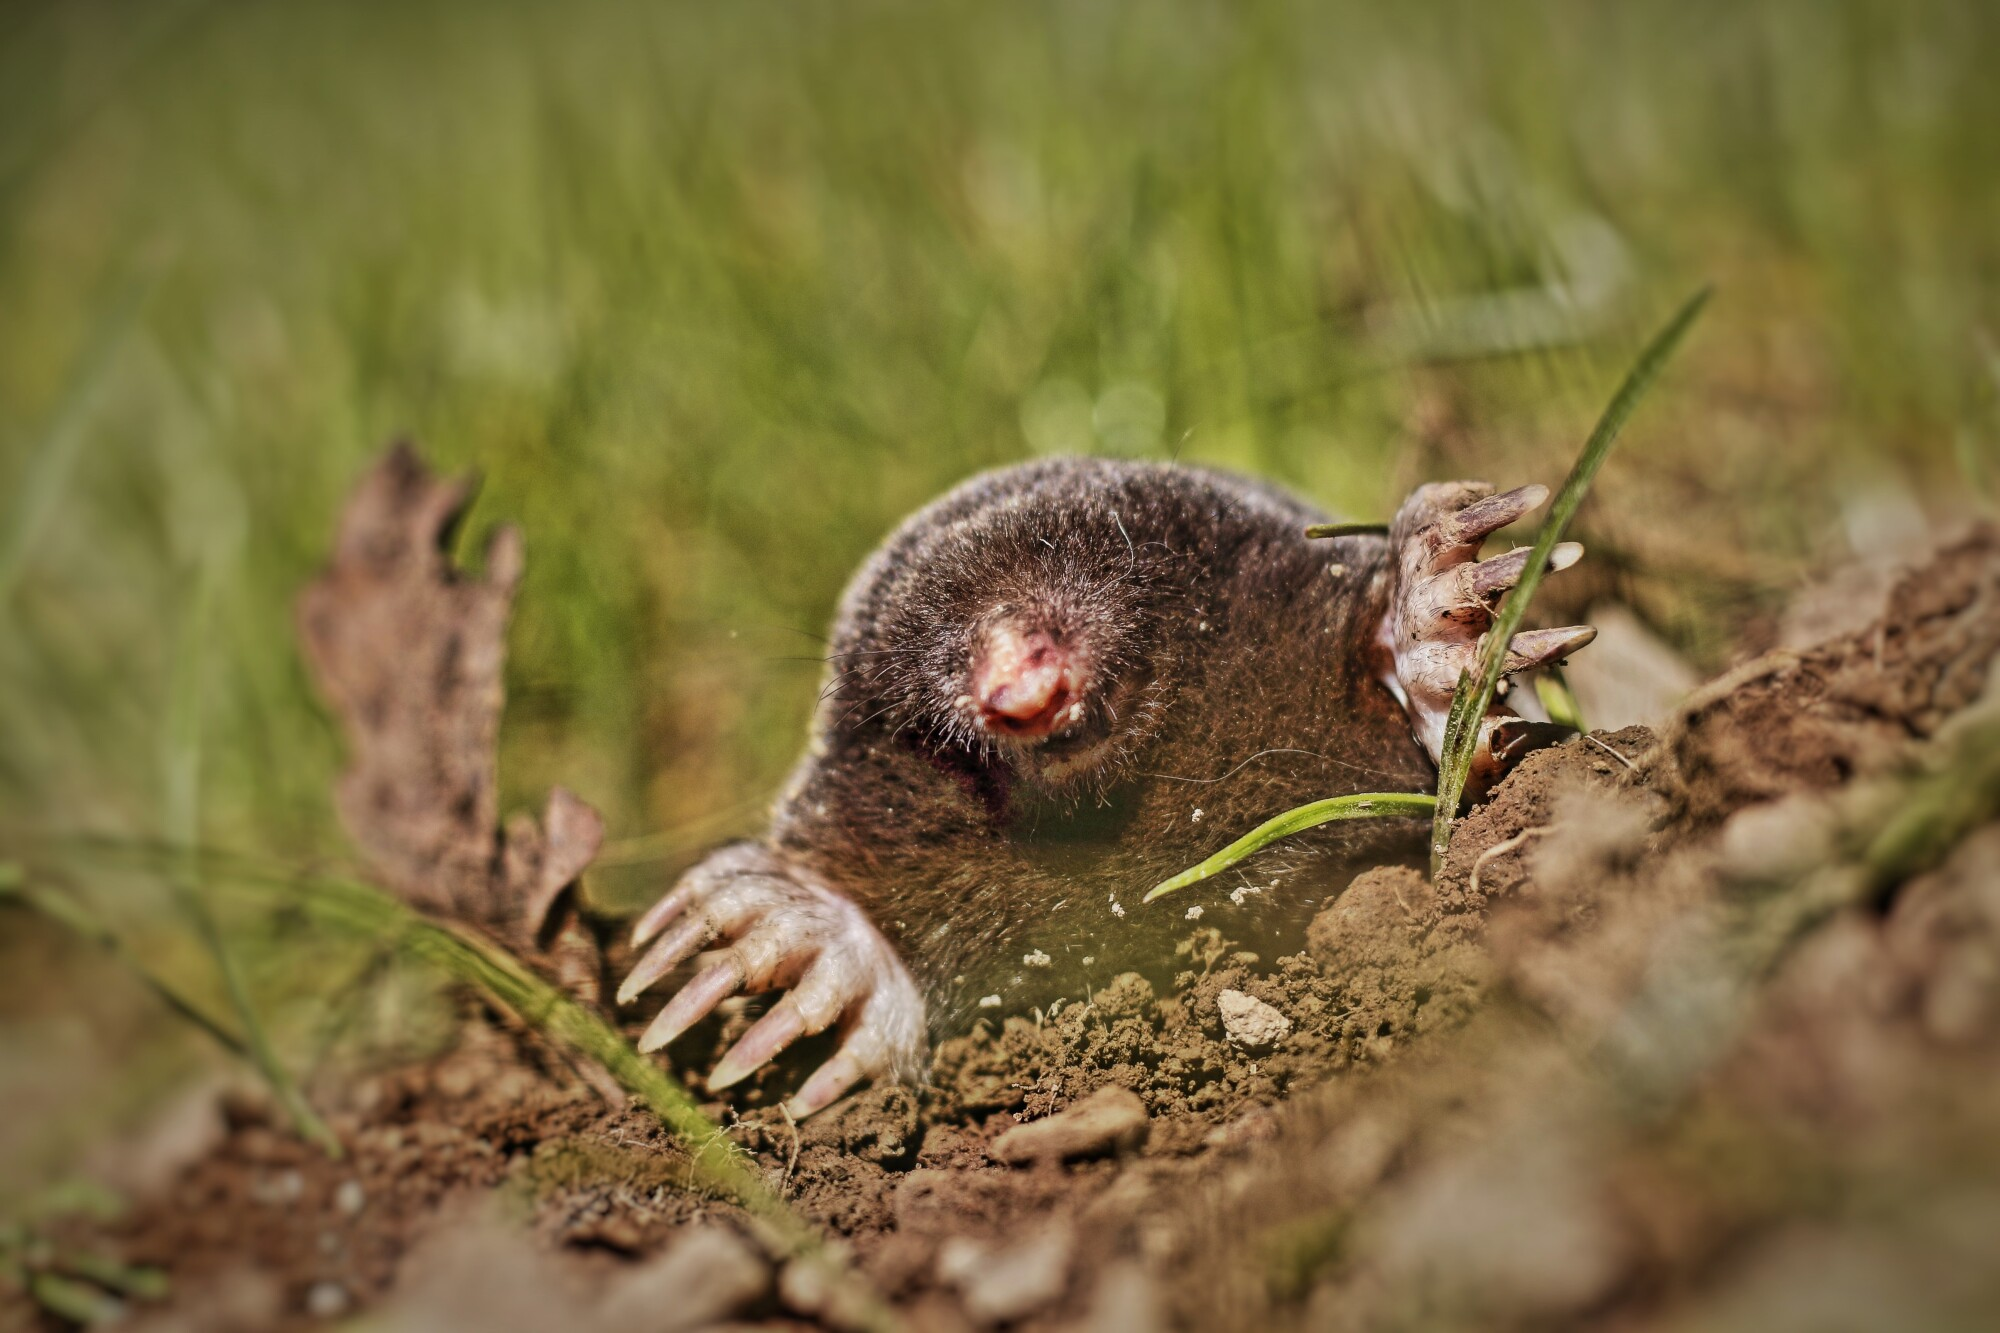 do moles carry diseases